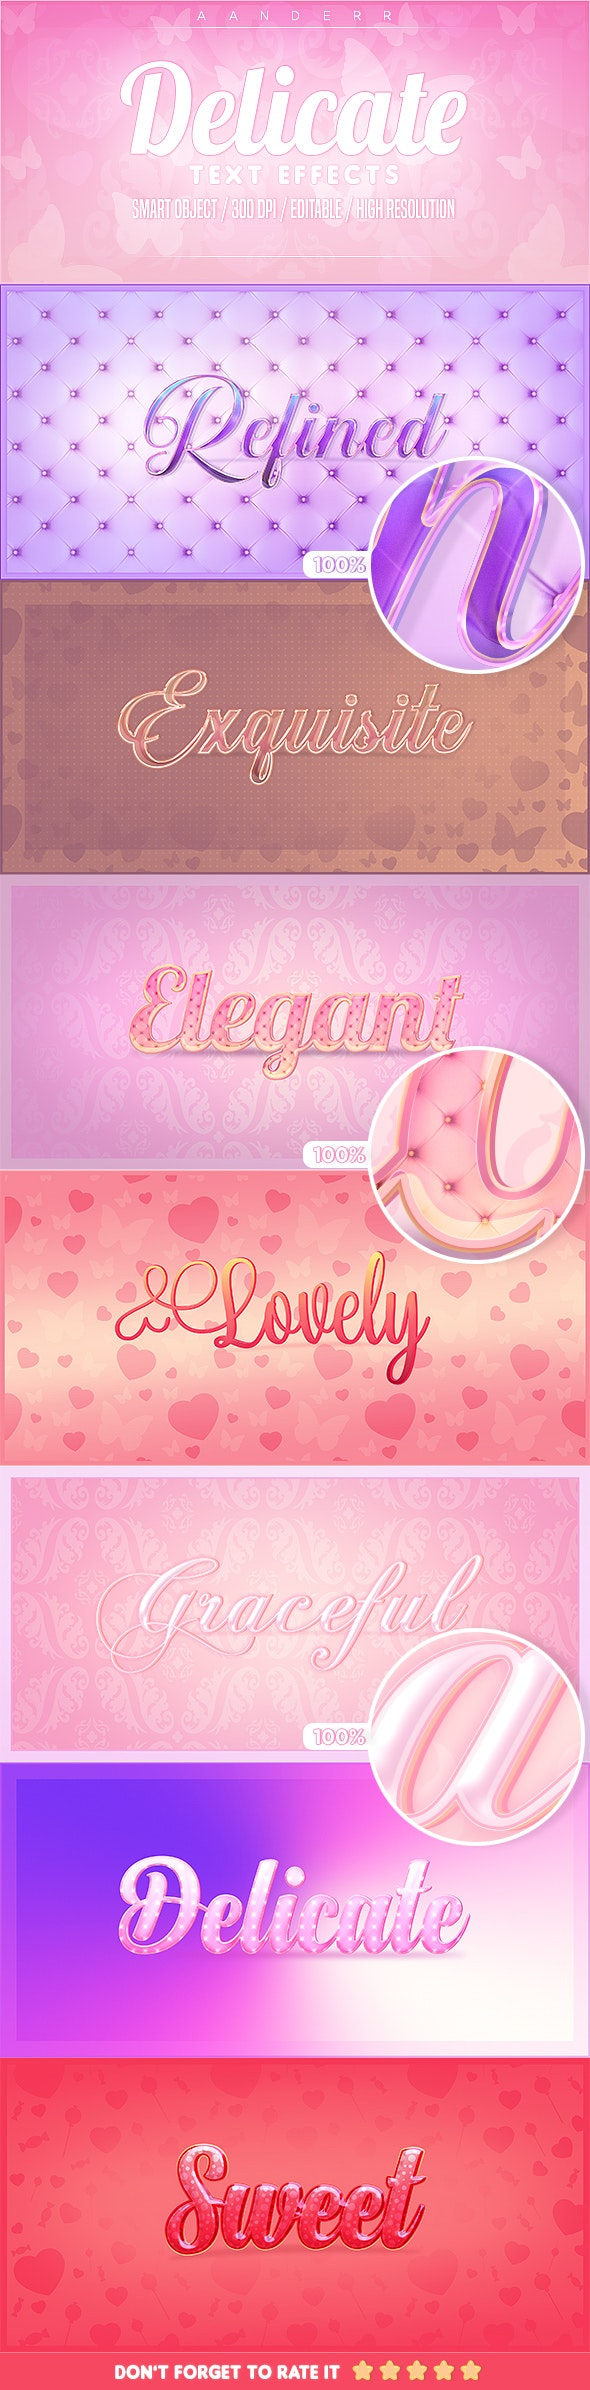 Delicate Photoshop Text Effects - Text Effects Actions